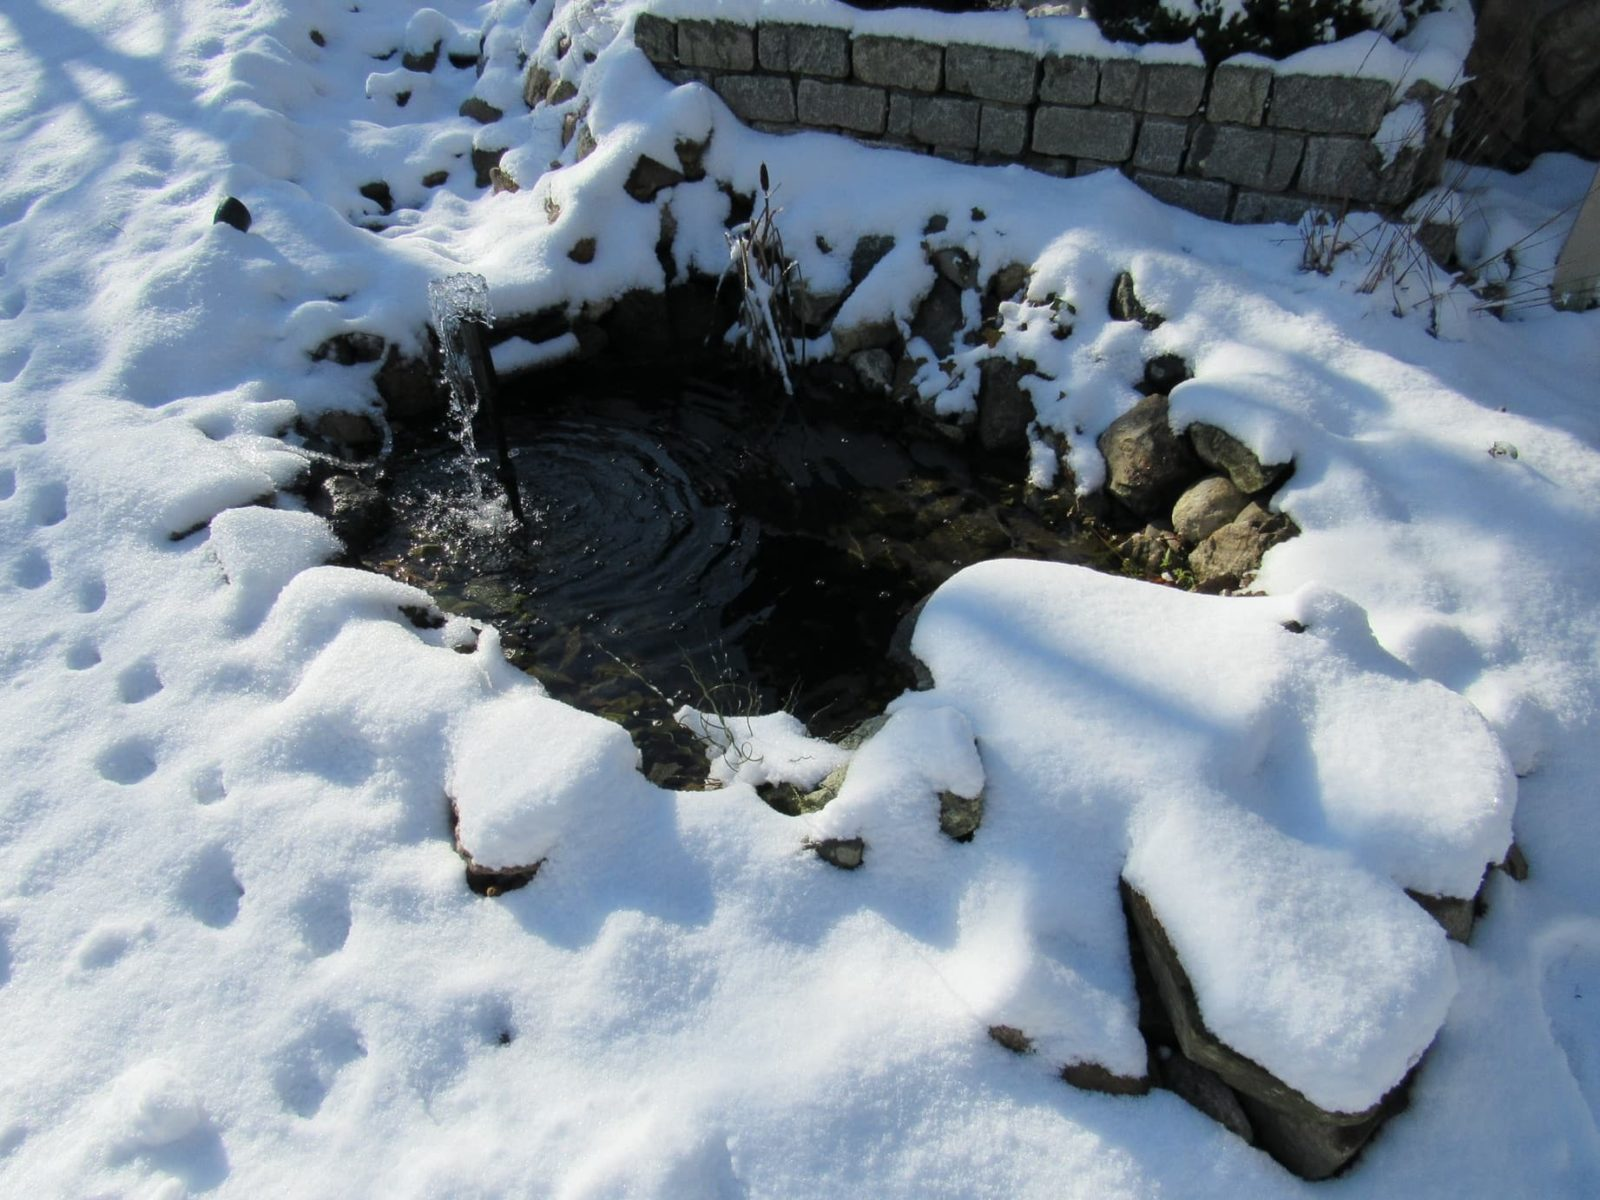 a garden pond surrounded by snow in winter